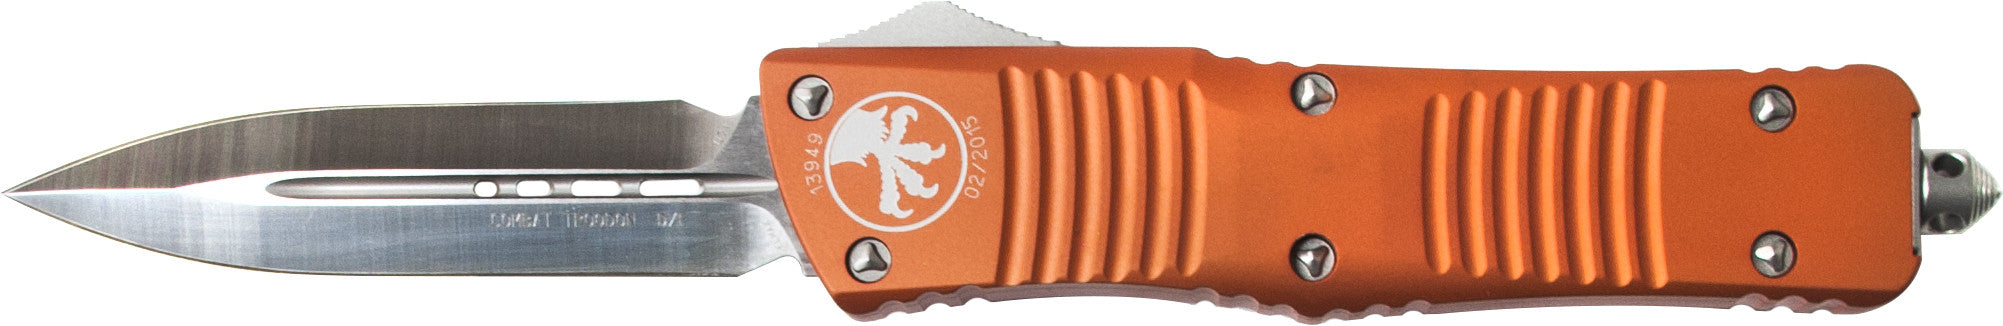 "Microtech Combat Troodon OTF D/E Automatic (3.8"" Satin) 142-4OR - GearBarrel.com"